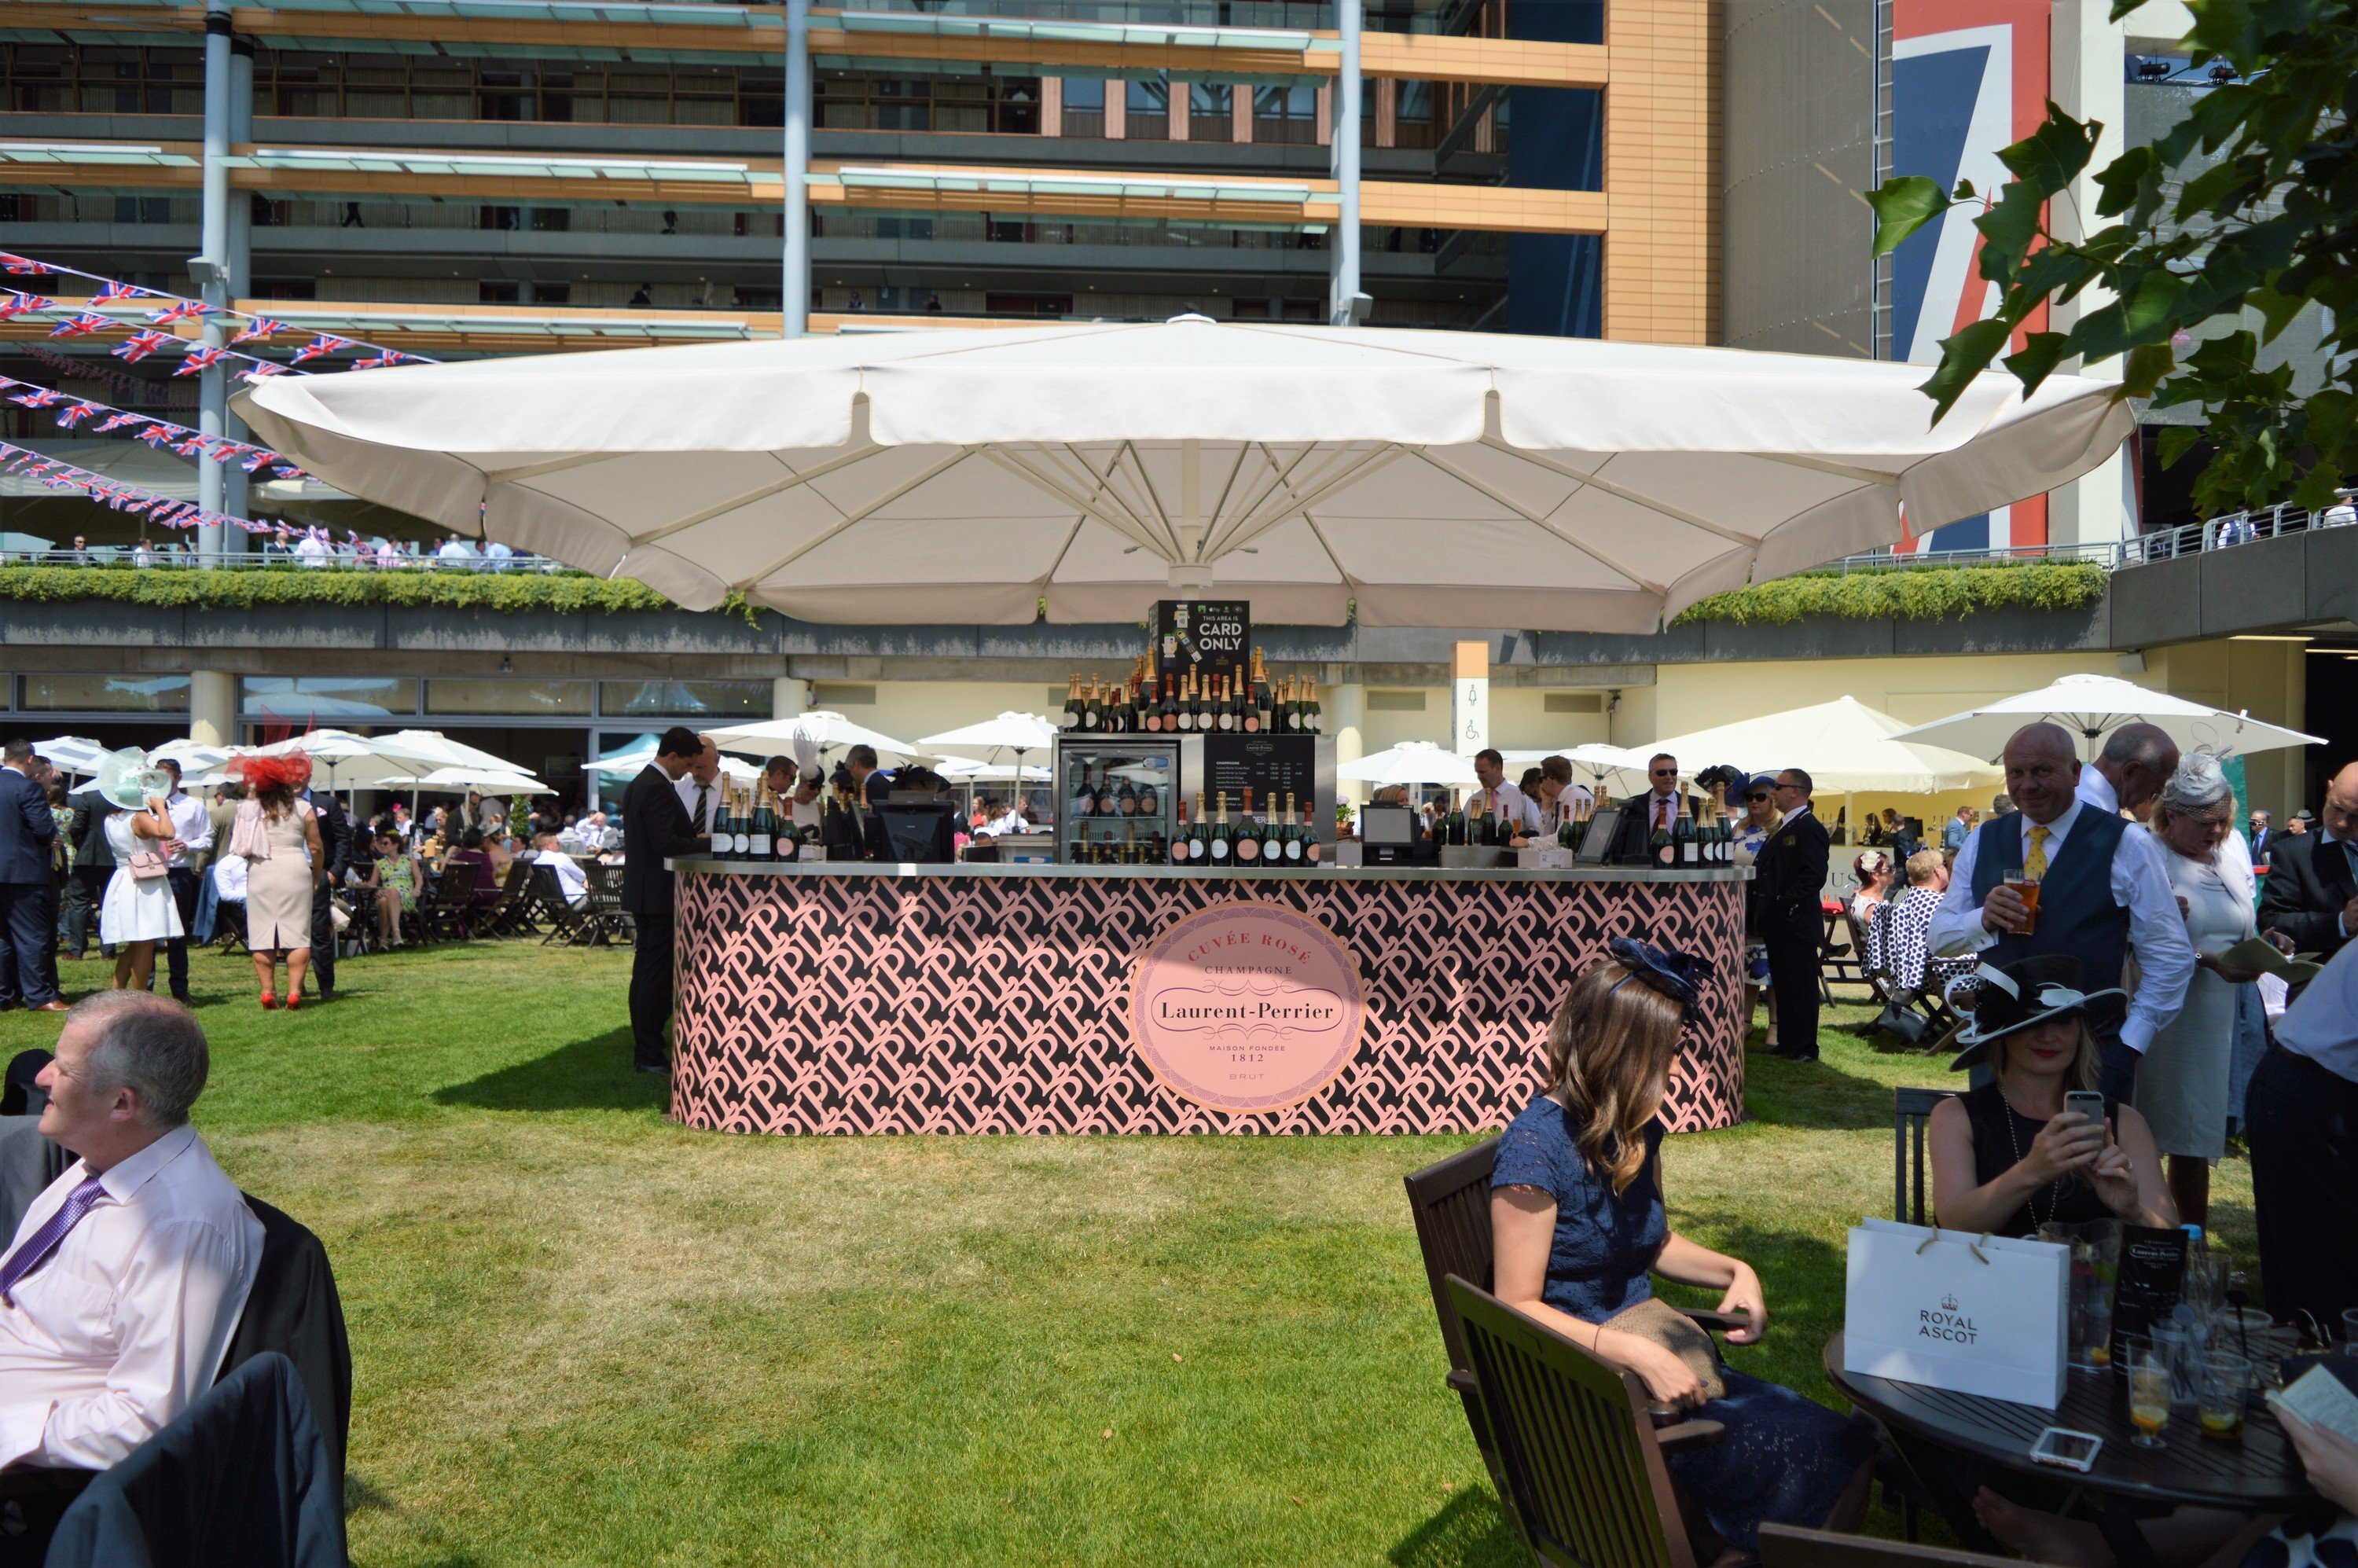 <p>Event, Mobile &amp; Stadia Bars &#8211; Umbrella Bar &#8211; Champagne Bar.</p> <p>Premium Champagne Bar Laurent Perrier.</p> <p>&nbsp;</p> <p>Ideally suited as a centre piece outdoor event bar serving premium champagne or other premium drinks brands at high profile sporting events including Royal Ascot, Cricket at Lords.</p> <p>&nbsp;</p> <p>Bespoke Design and Manufacture in UK to meet customer individual requirements</p>